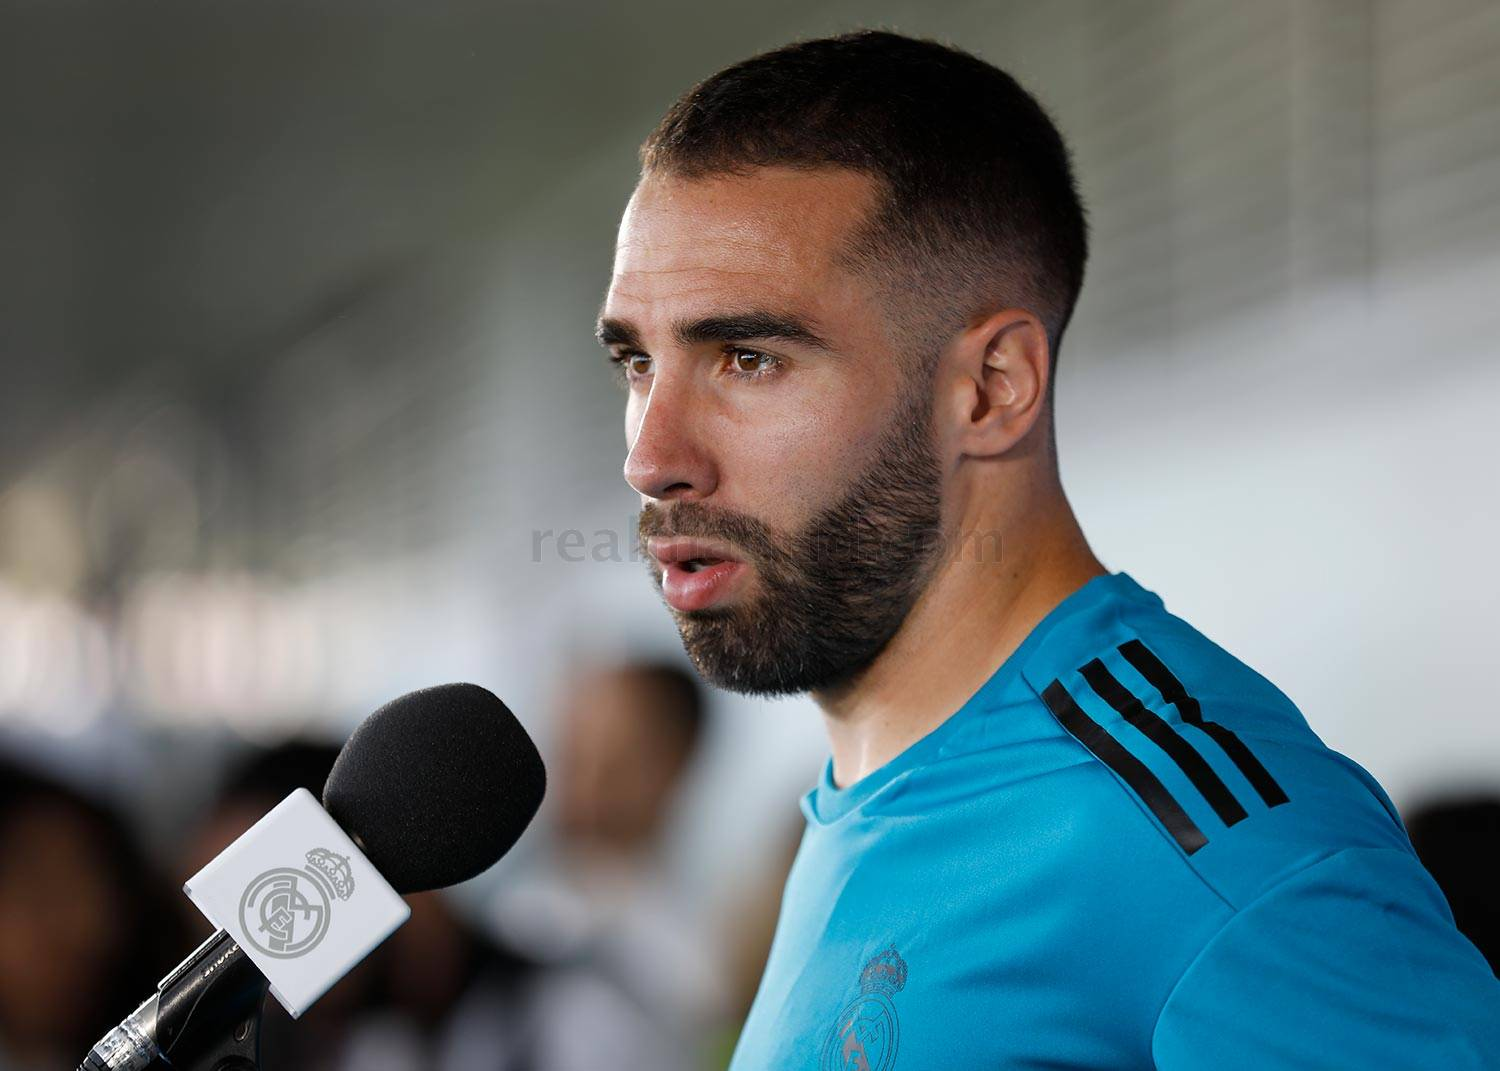 Real Madrid - Carvajal durante el Open Media Day 2018 - 22-05-2018